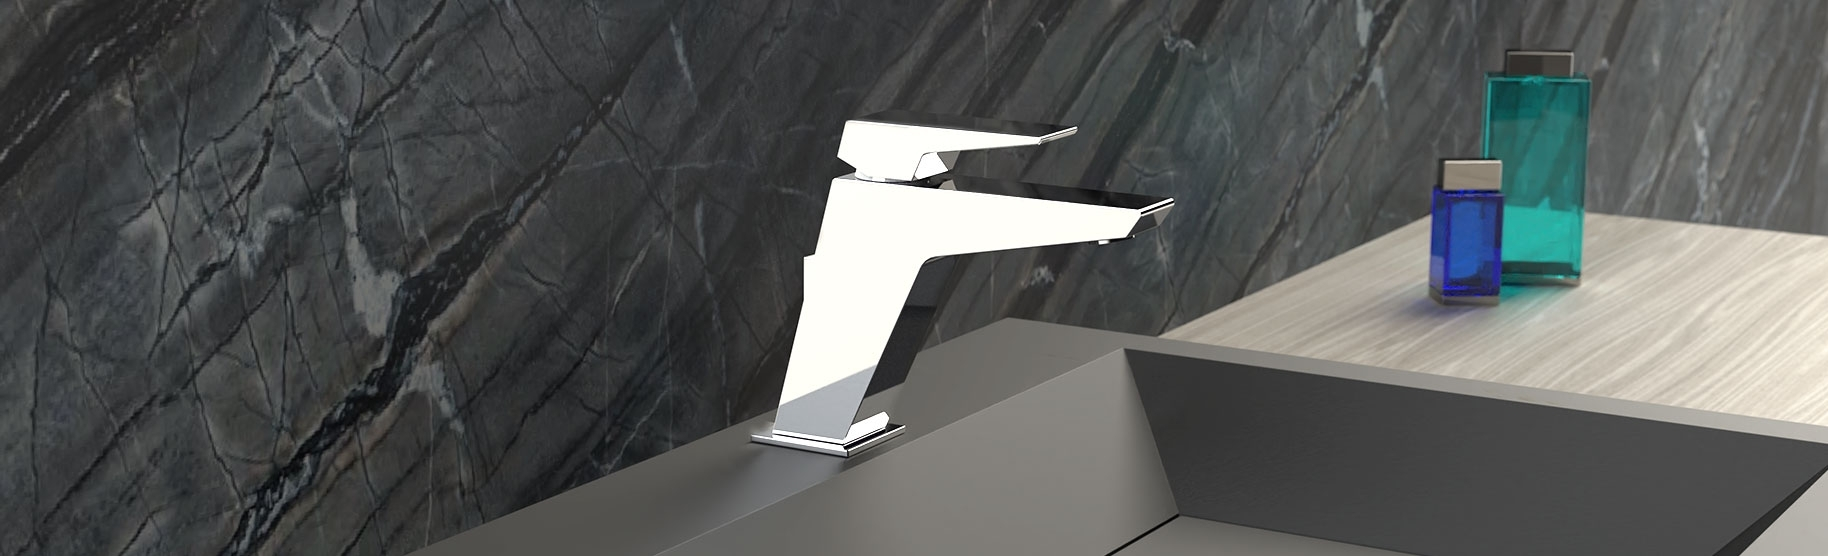 SPEED single-lever faucet collection